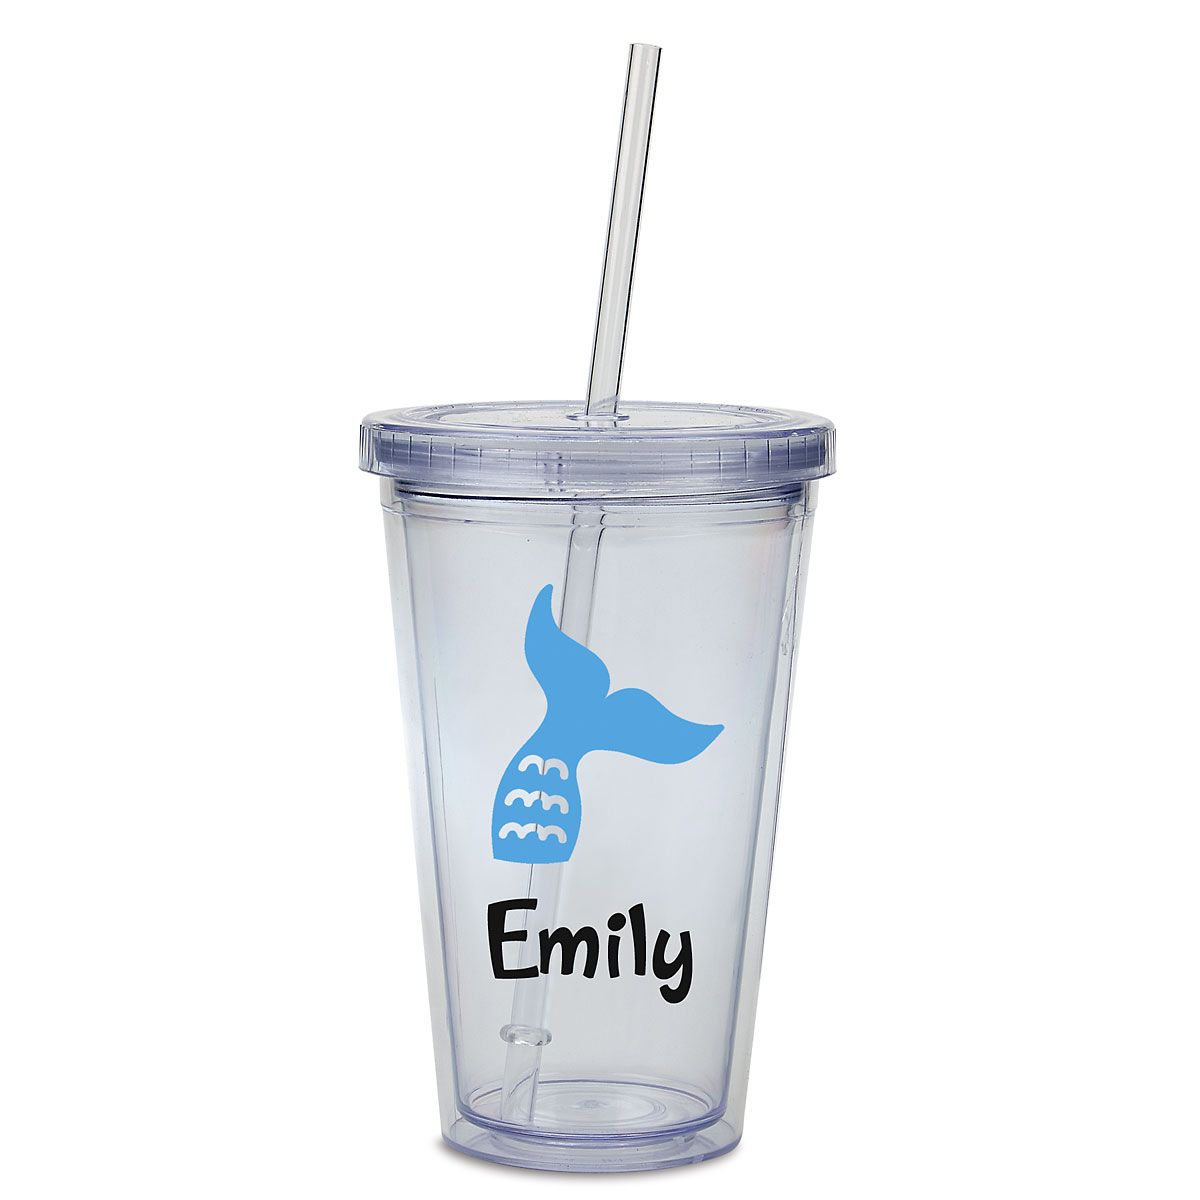 Mermaid Acrylic Personalized Beverage Cup